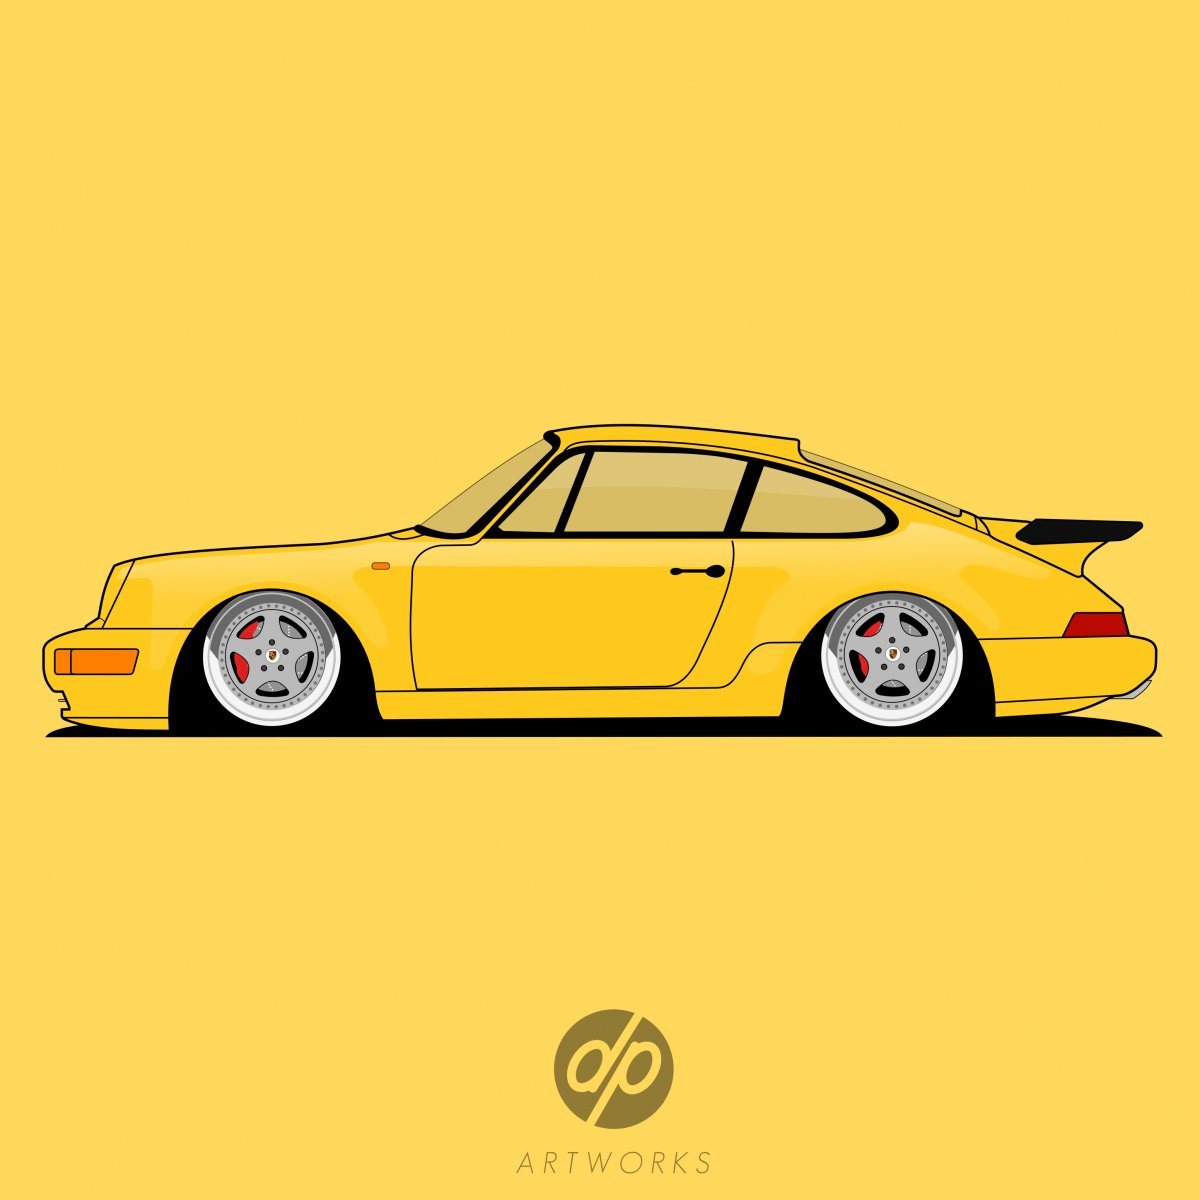 Porsche 964 Turbo - dp artworks